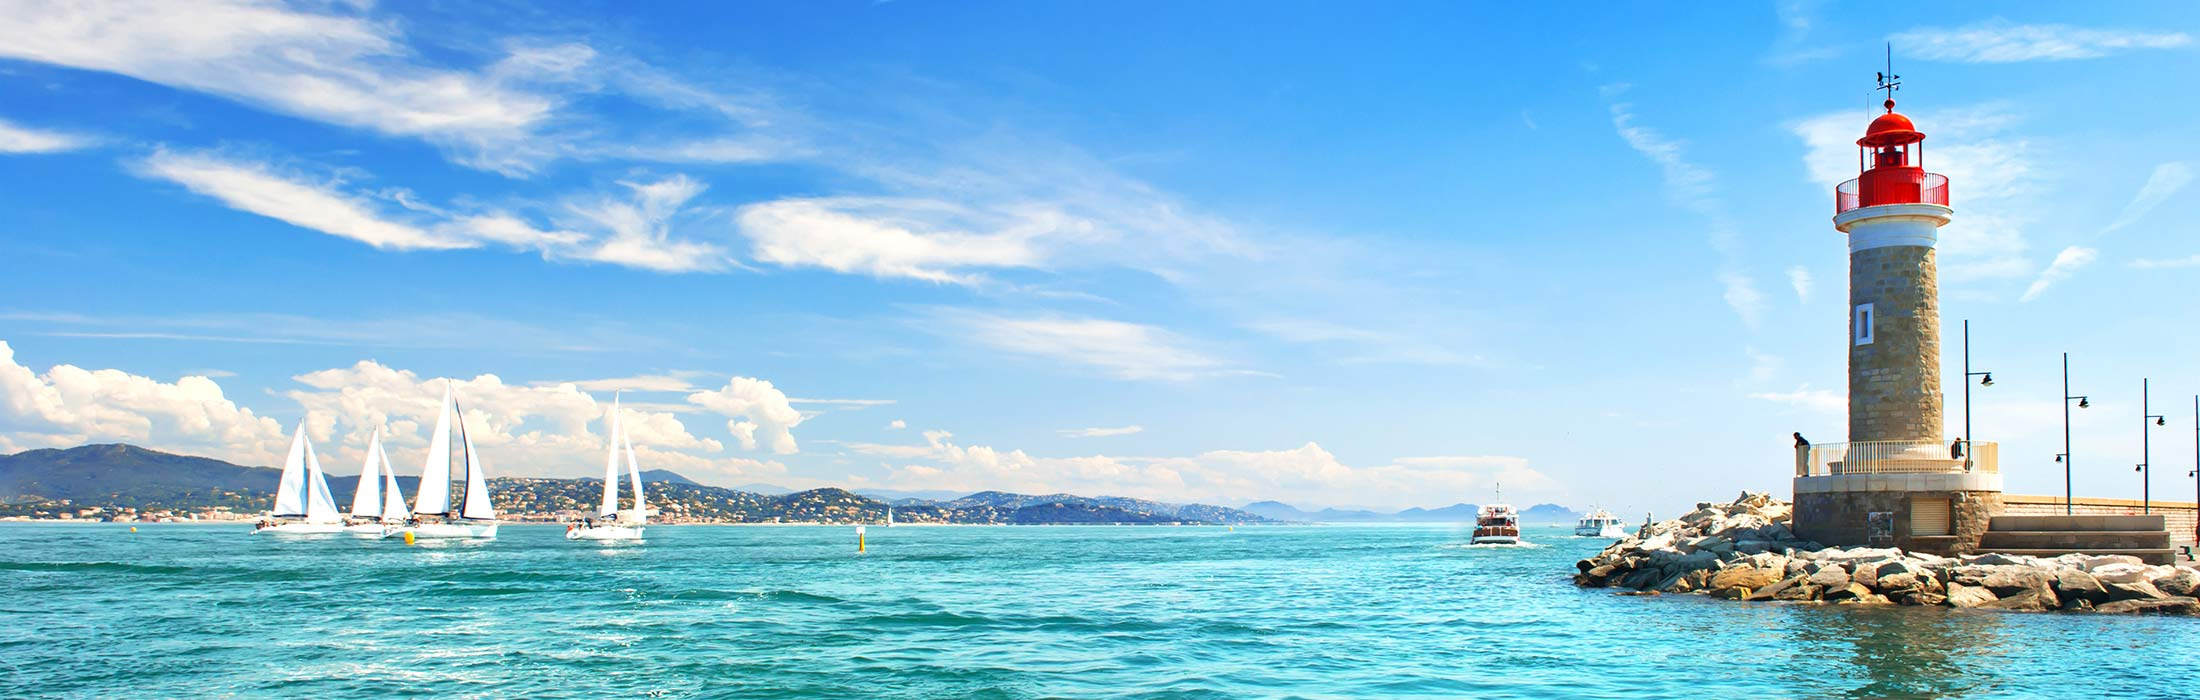 French_Riviera_Slider_02.jpg